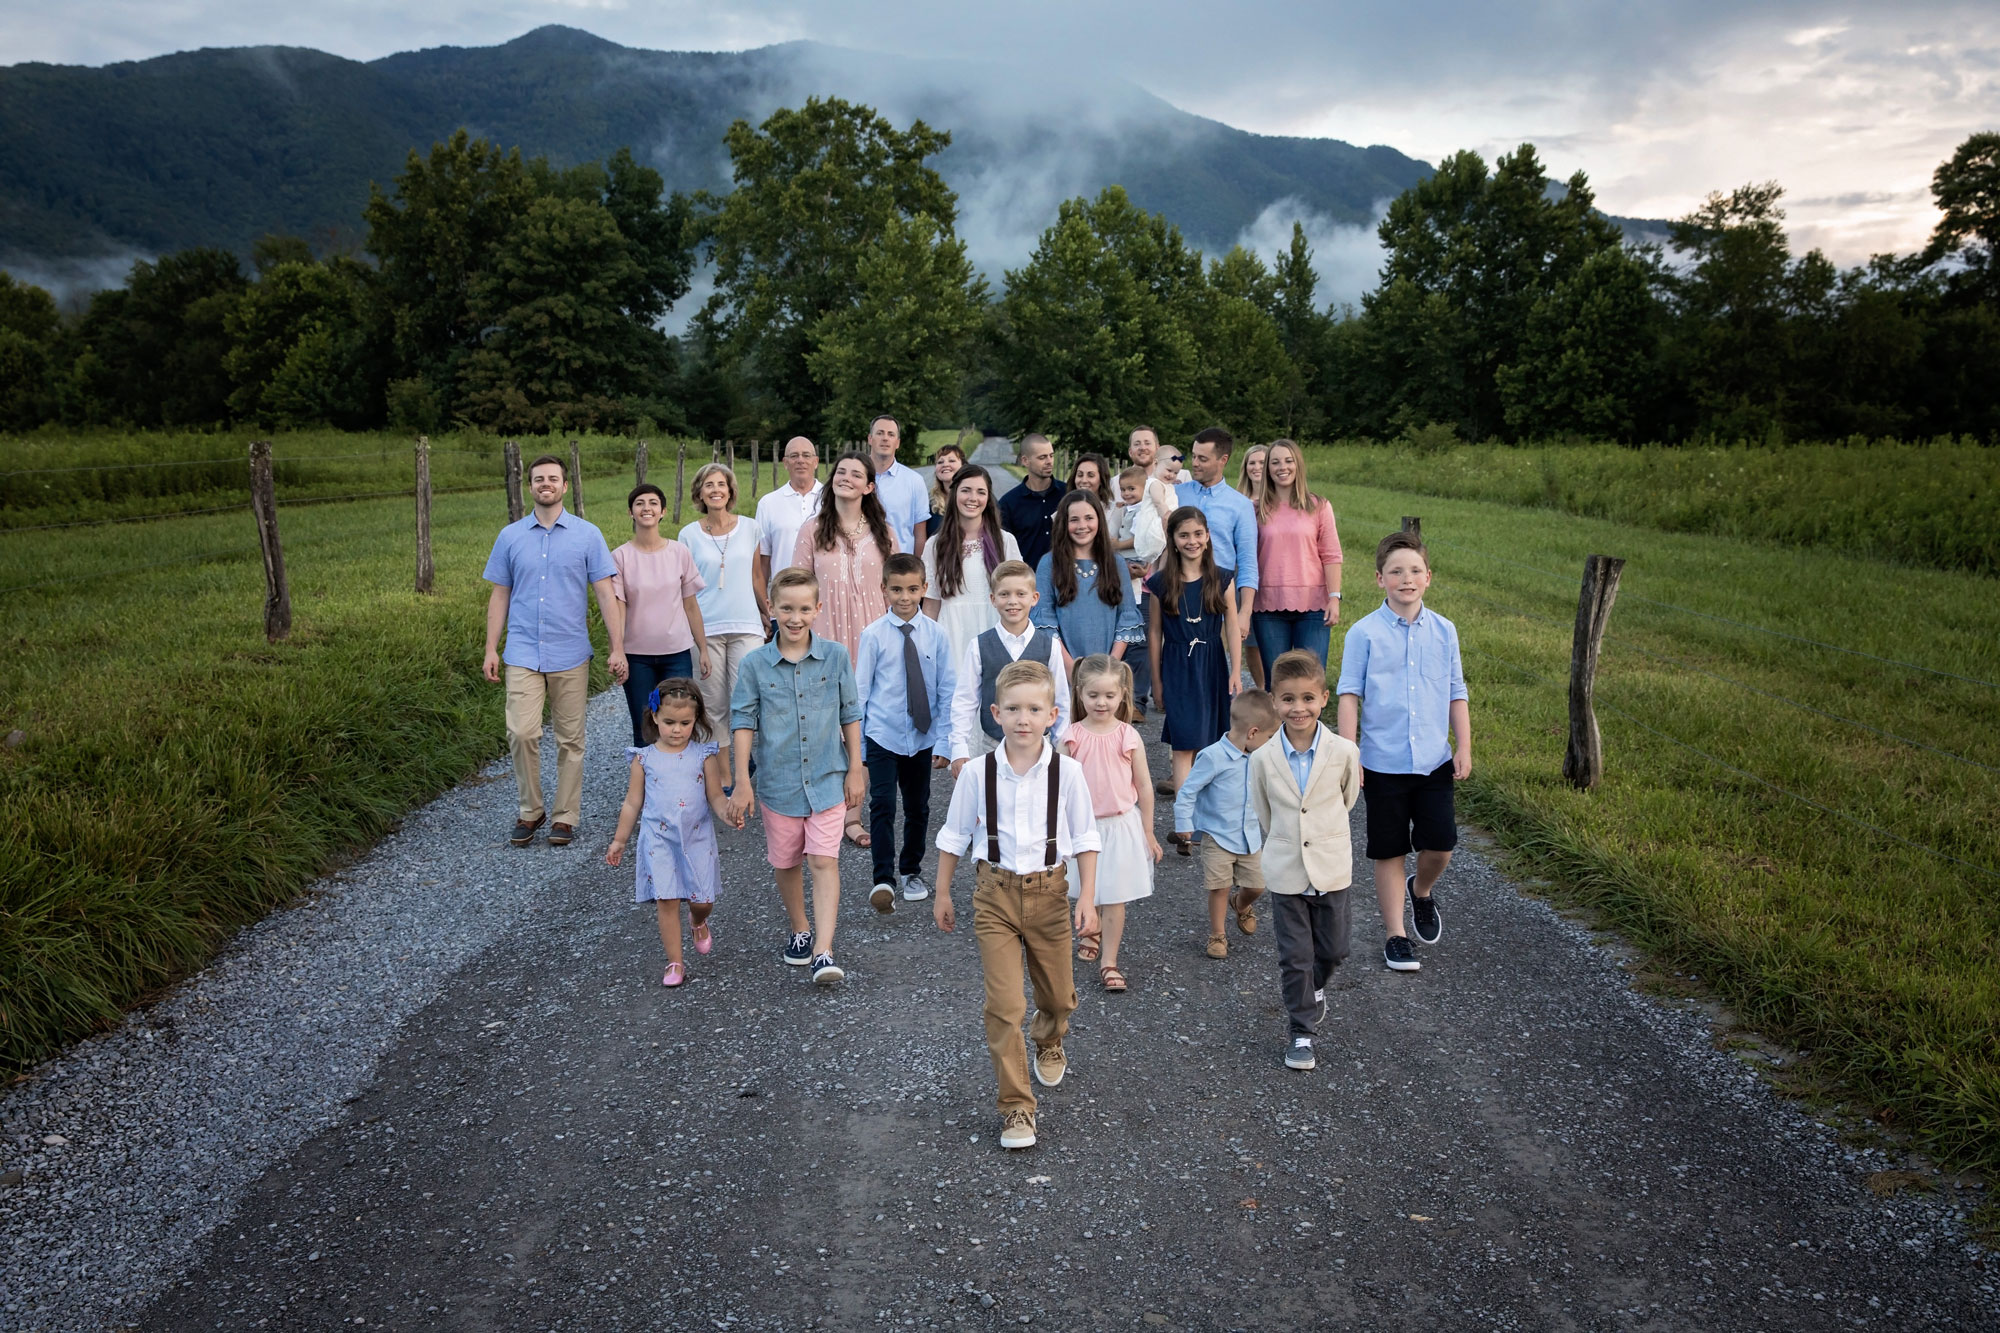 candid-large-family-portrait-smoky-mountains.jpg